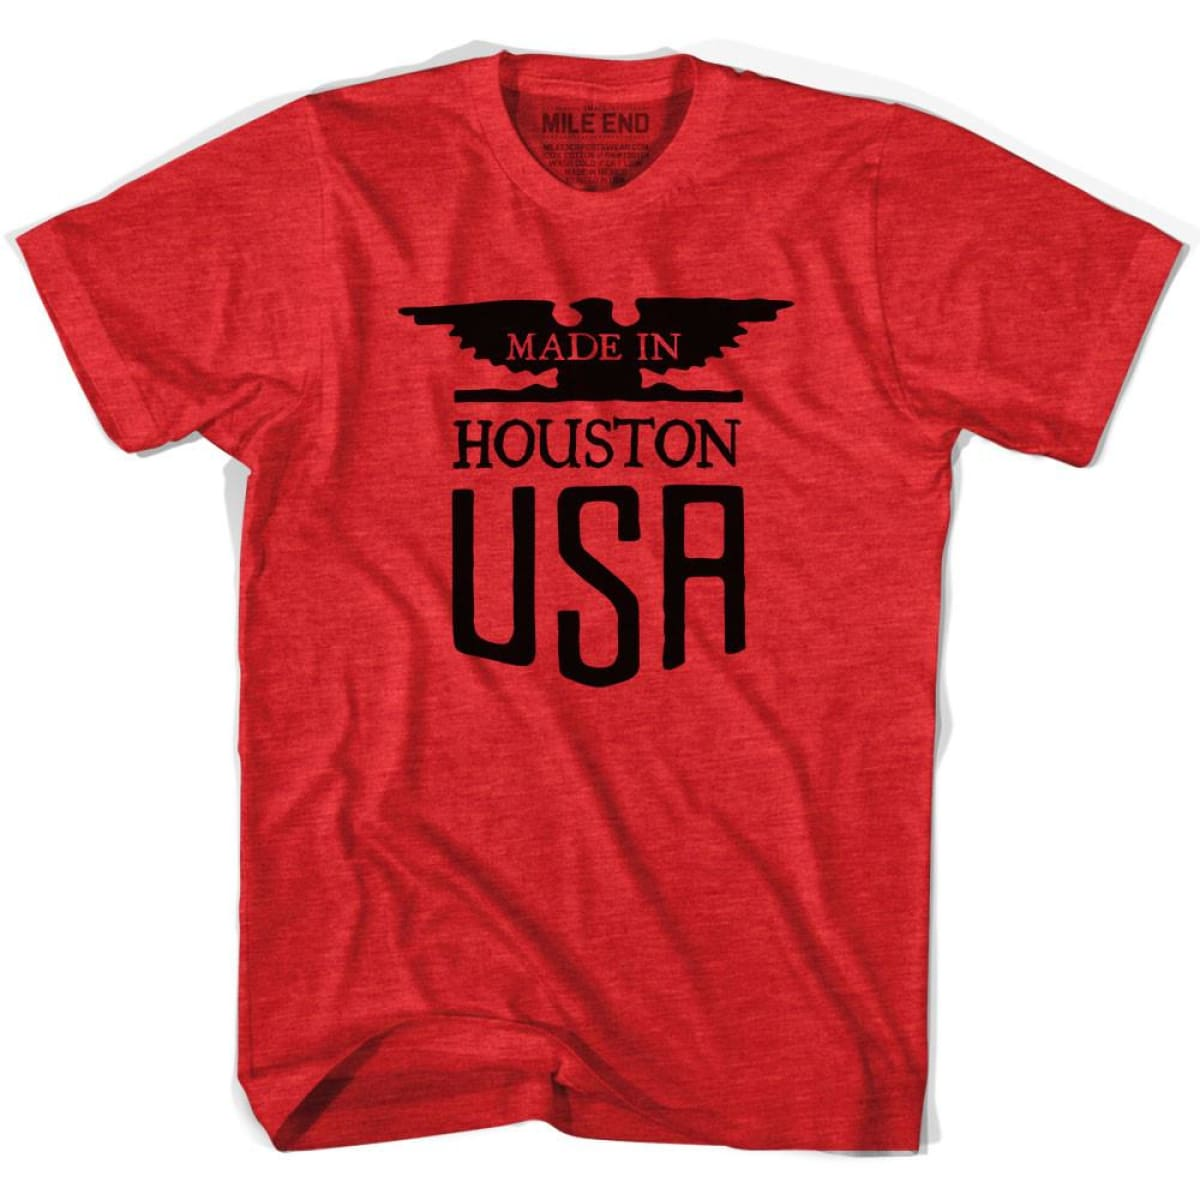 Made In USA Houston Vintage Eagle T-shirt - Heather Red / Adult Small - Made in Eagle